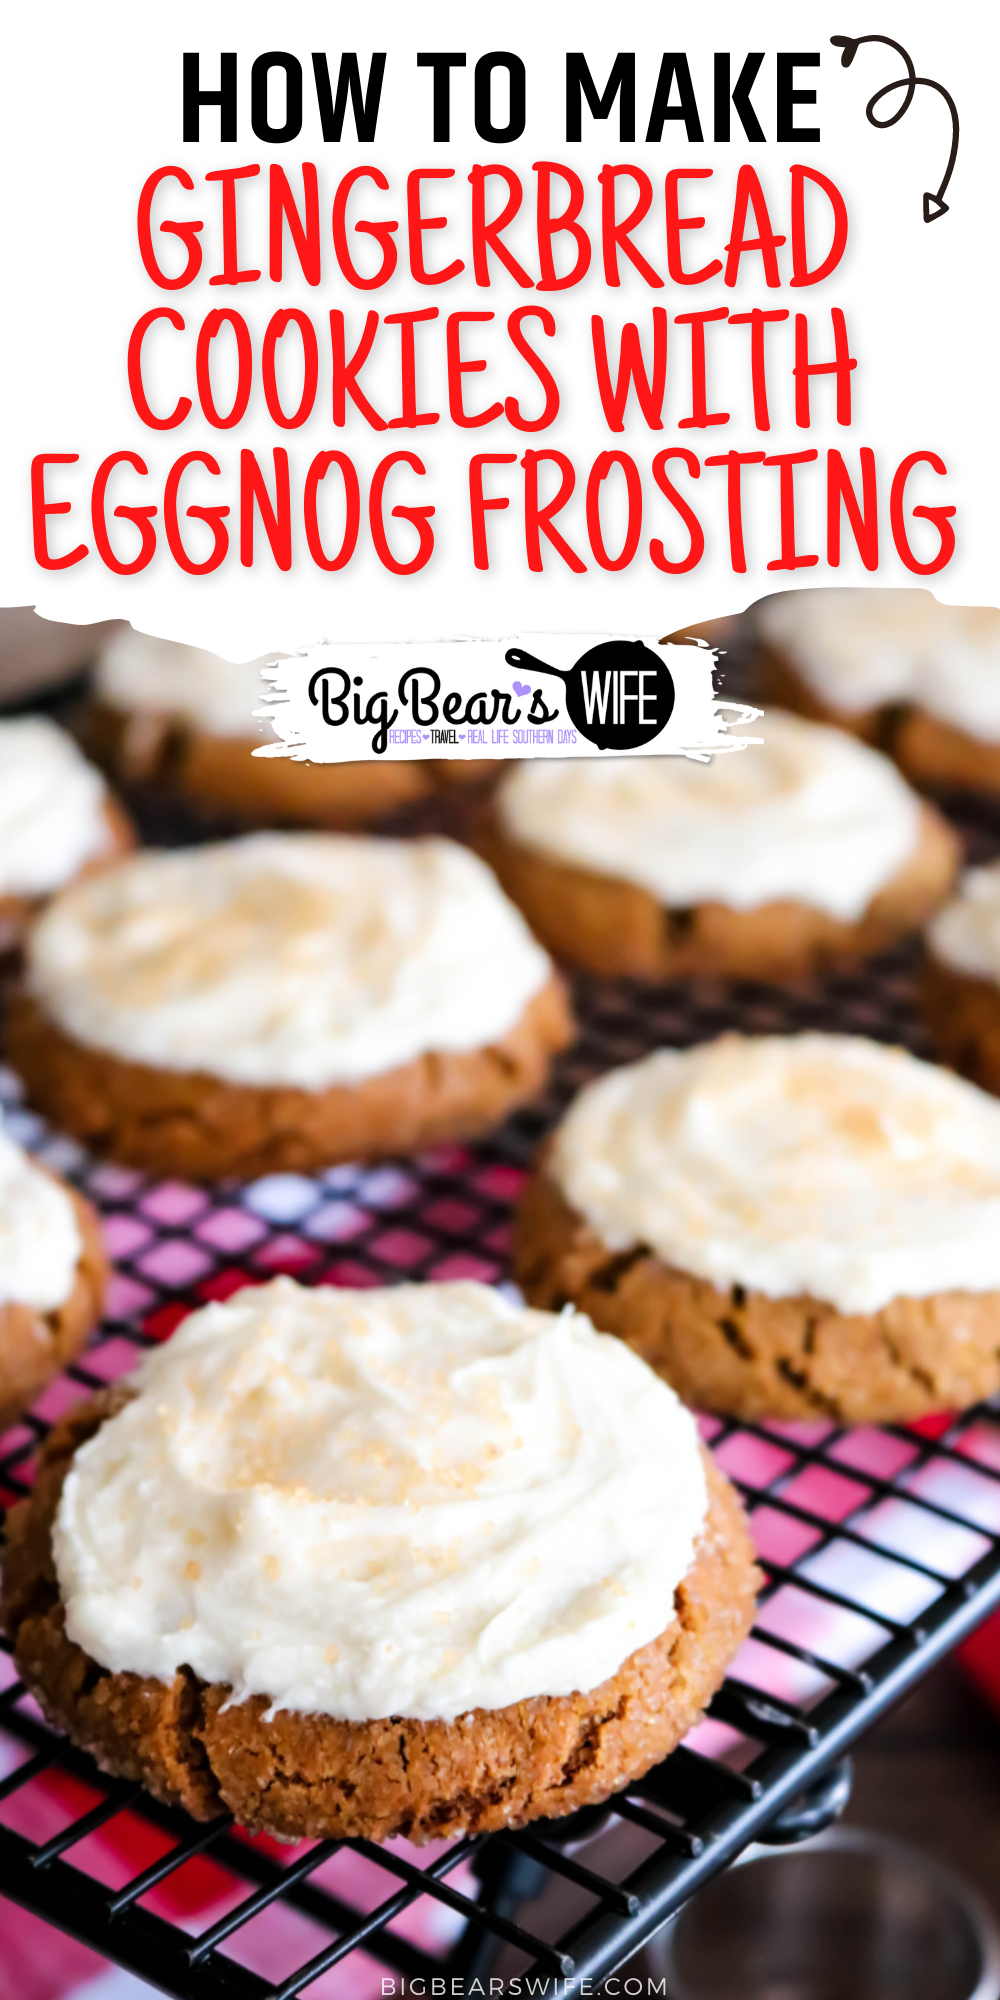 These Gingerbread Cookies are soft on the inside with a sugar coated crunch on the outside! They're packed full of warm spices and topped with a homemade eggnog frosting to create the perfect holiday cookie! via @bigbearswife